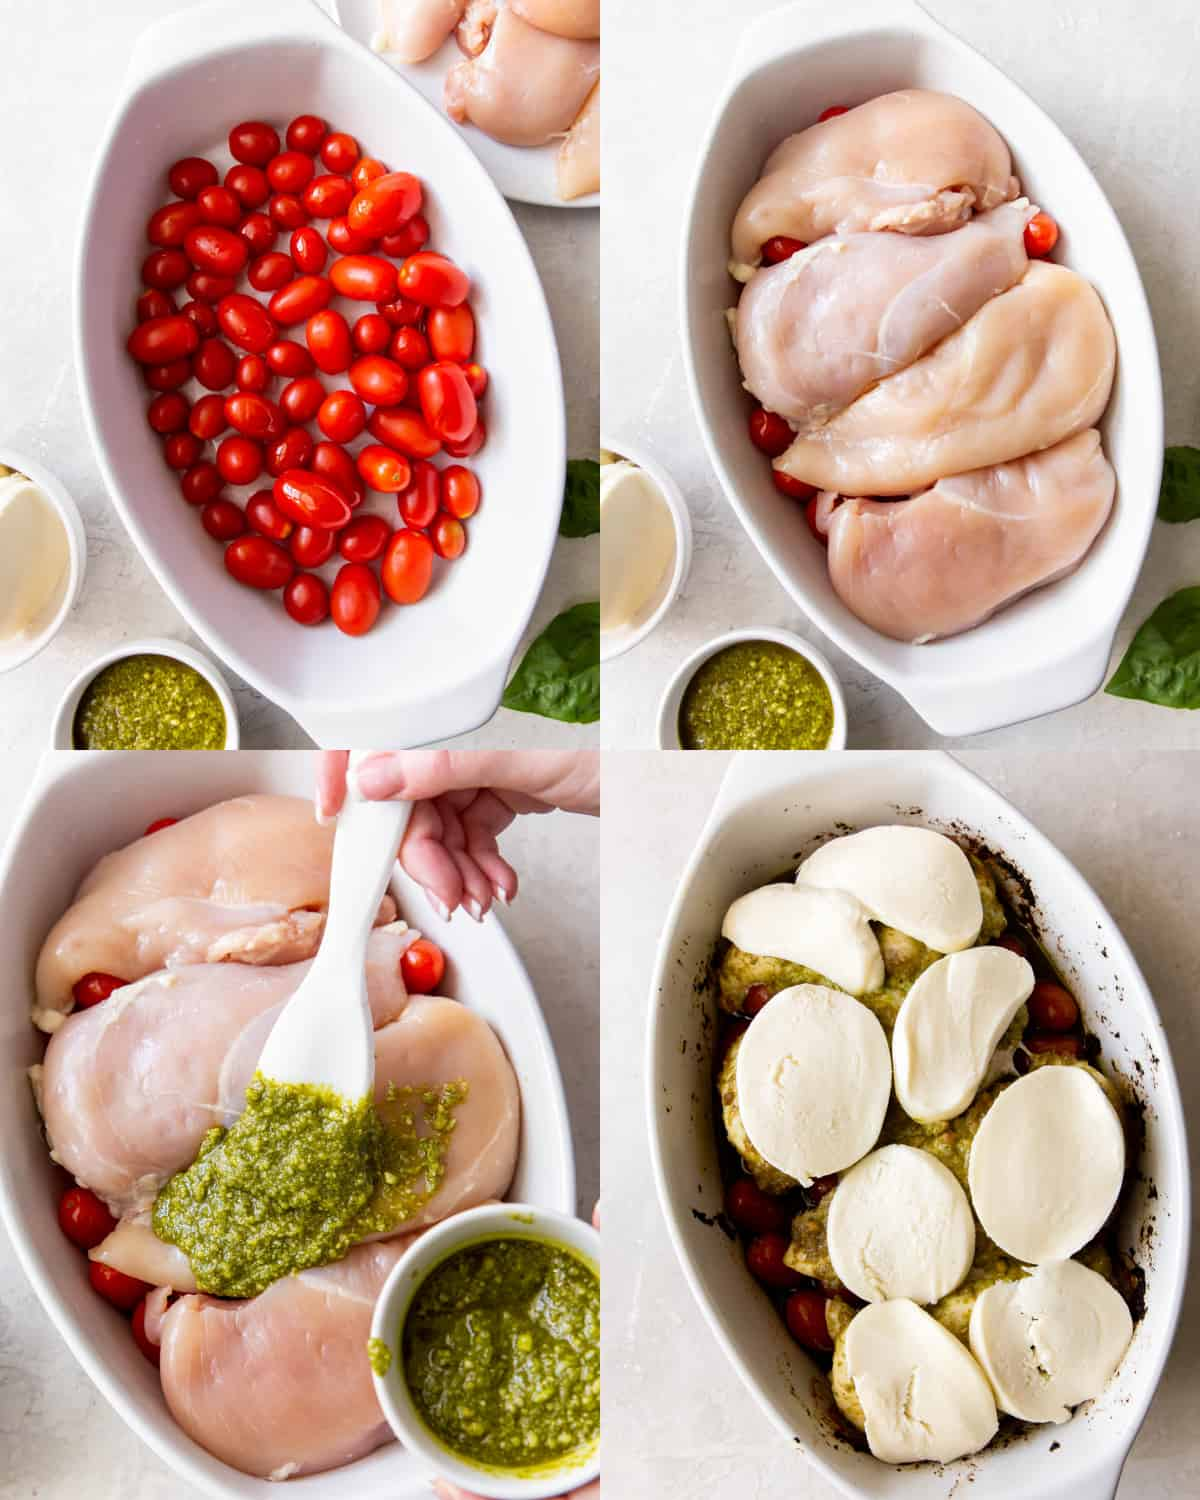 all of the ingredients for the baked pesto chicken layered in a baking dish